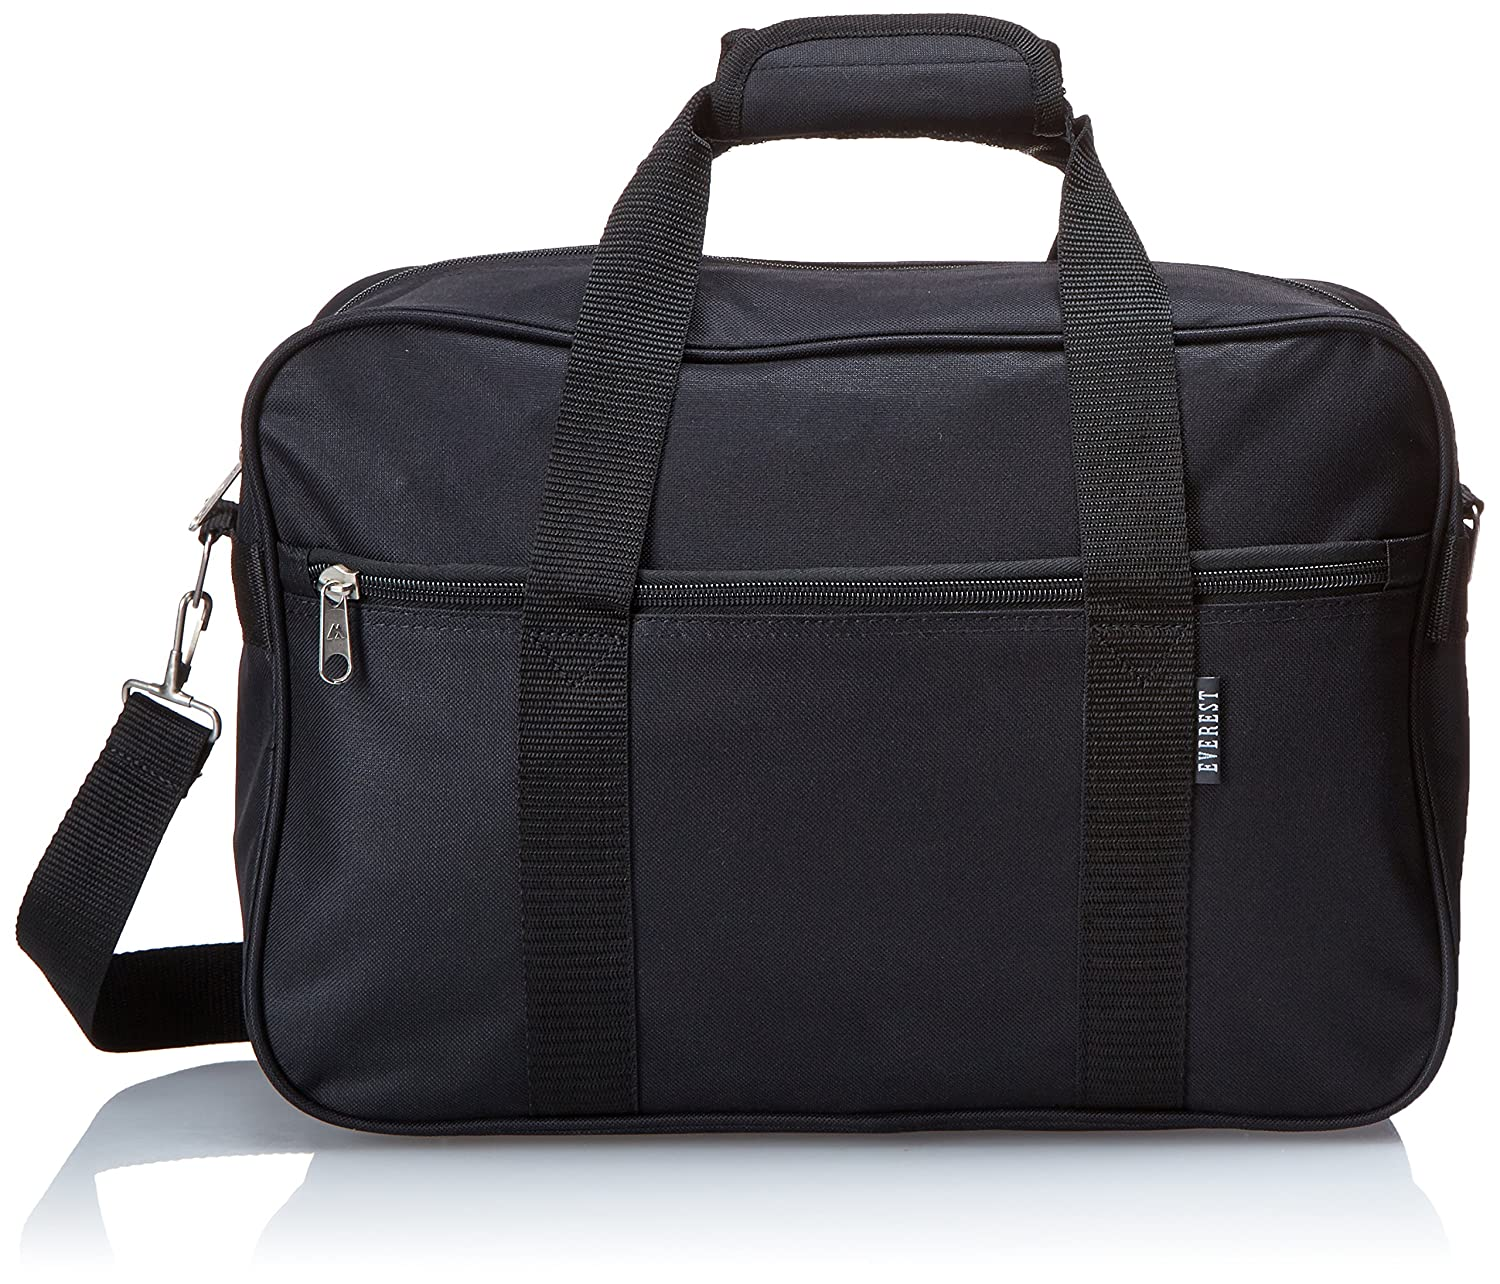 Everest Carry-On Briefcase, Black, One Size 1004D-BK